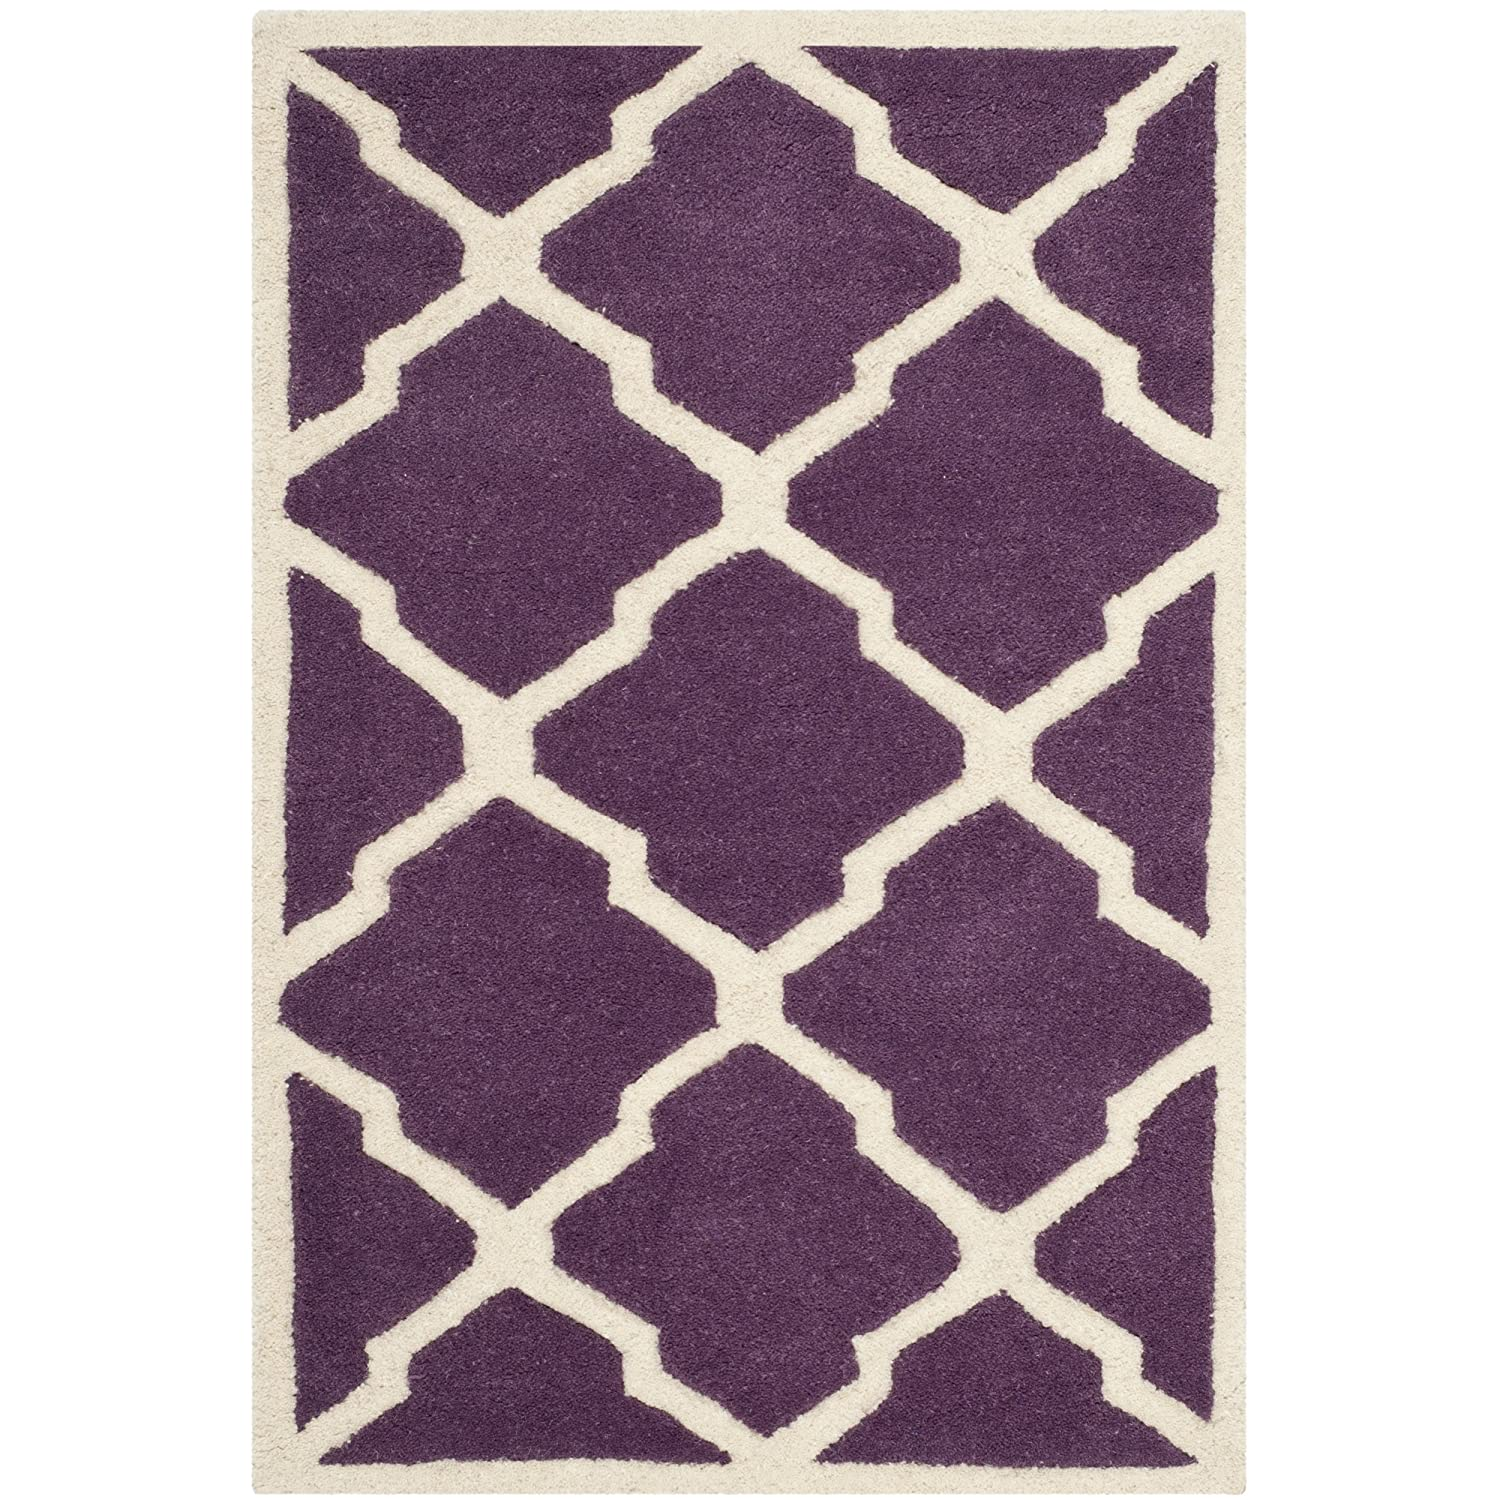 Safavieh Chatham Collection CHT735F Handmade Purple and Ivory Wool Area Rug, 2 feet by 3 feet (2' x 3') CHT735F-2